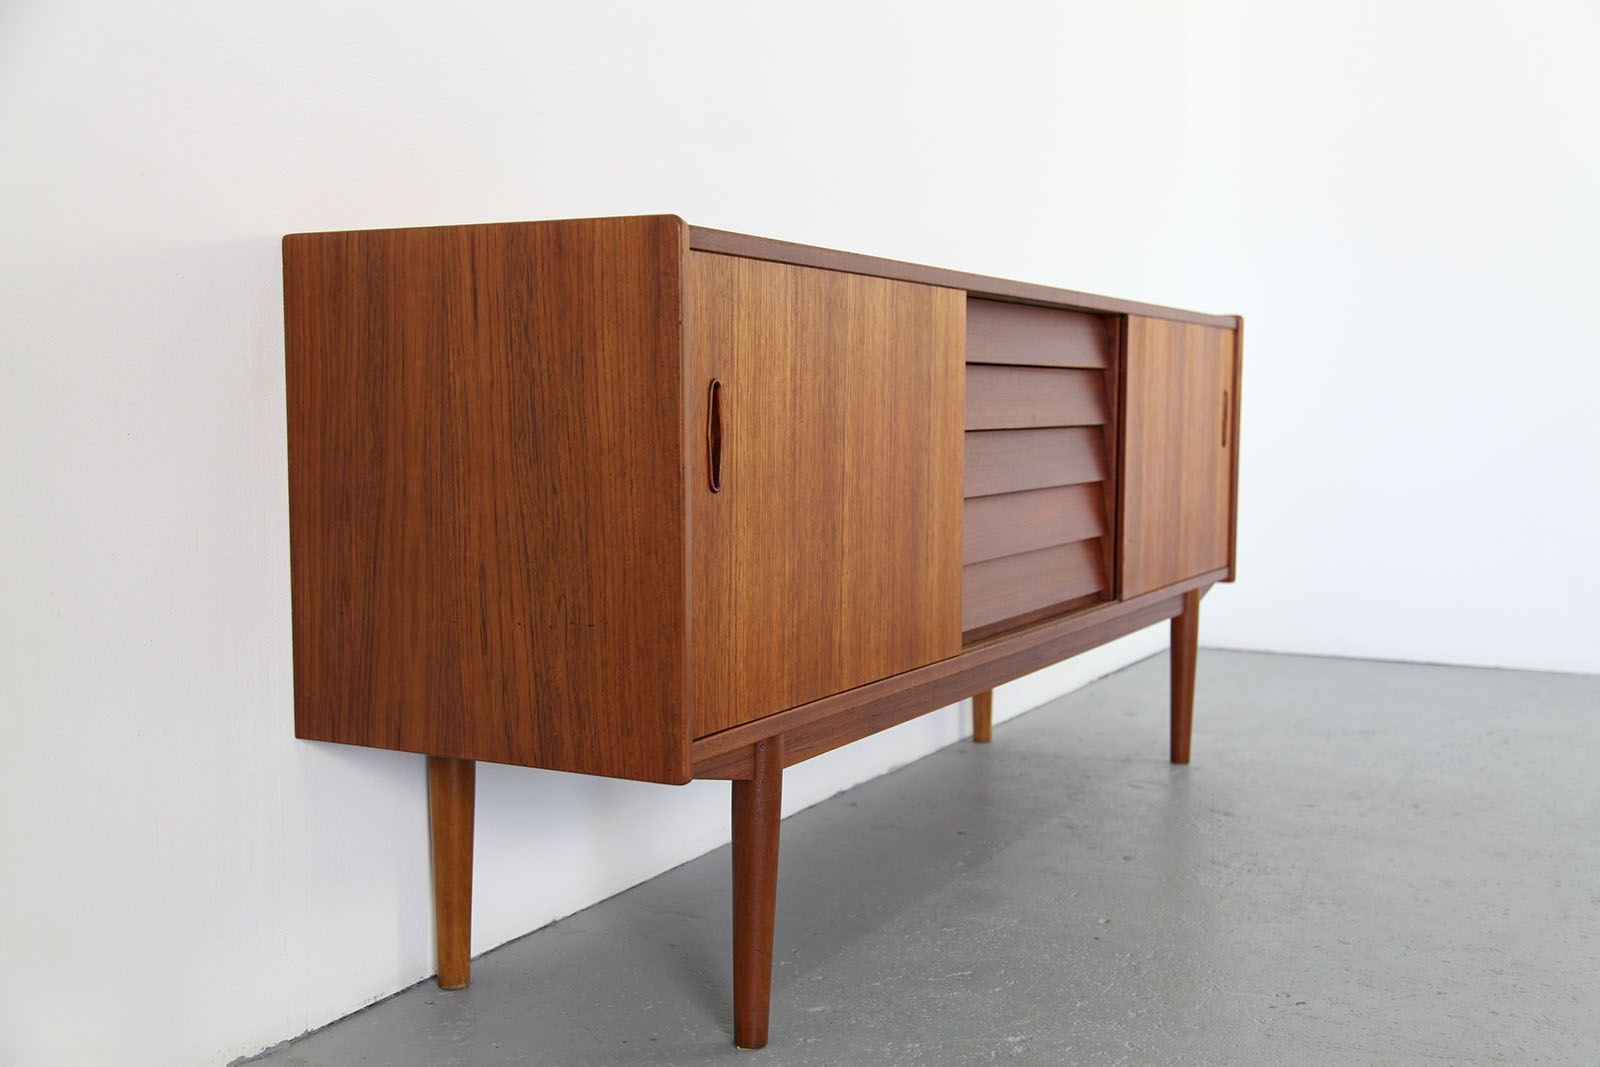 skandinavisches teakholz sideboard von nils jons f r hugo. Black Bedroom Furniture Sets. Home Design Ideas